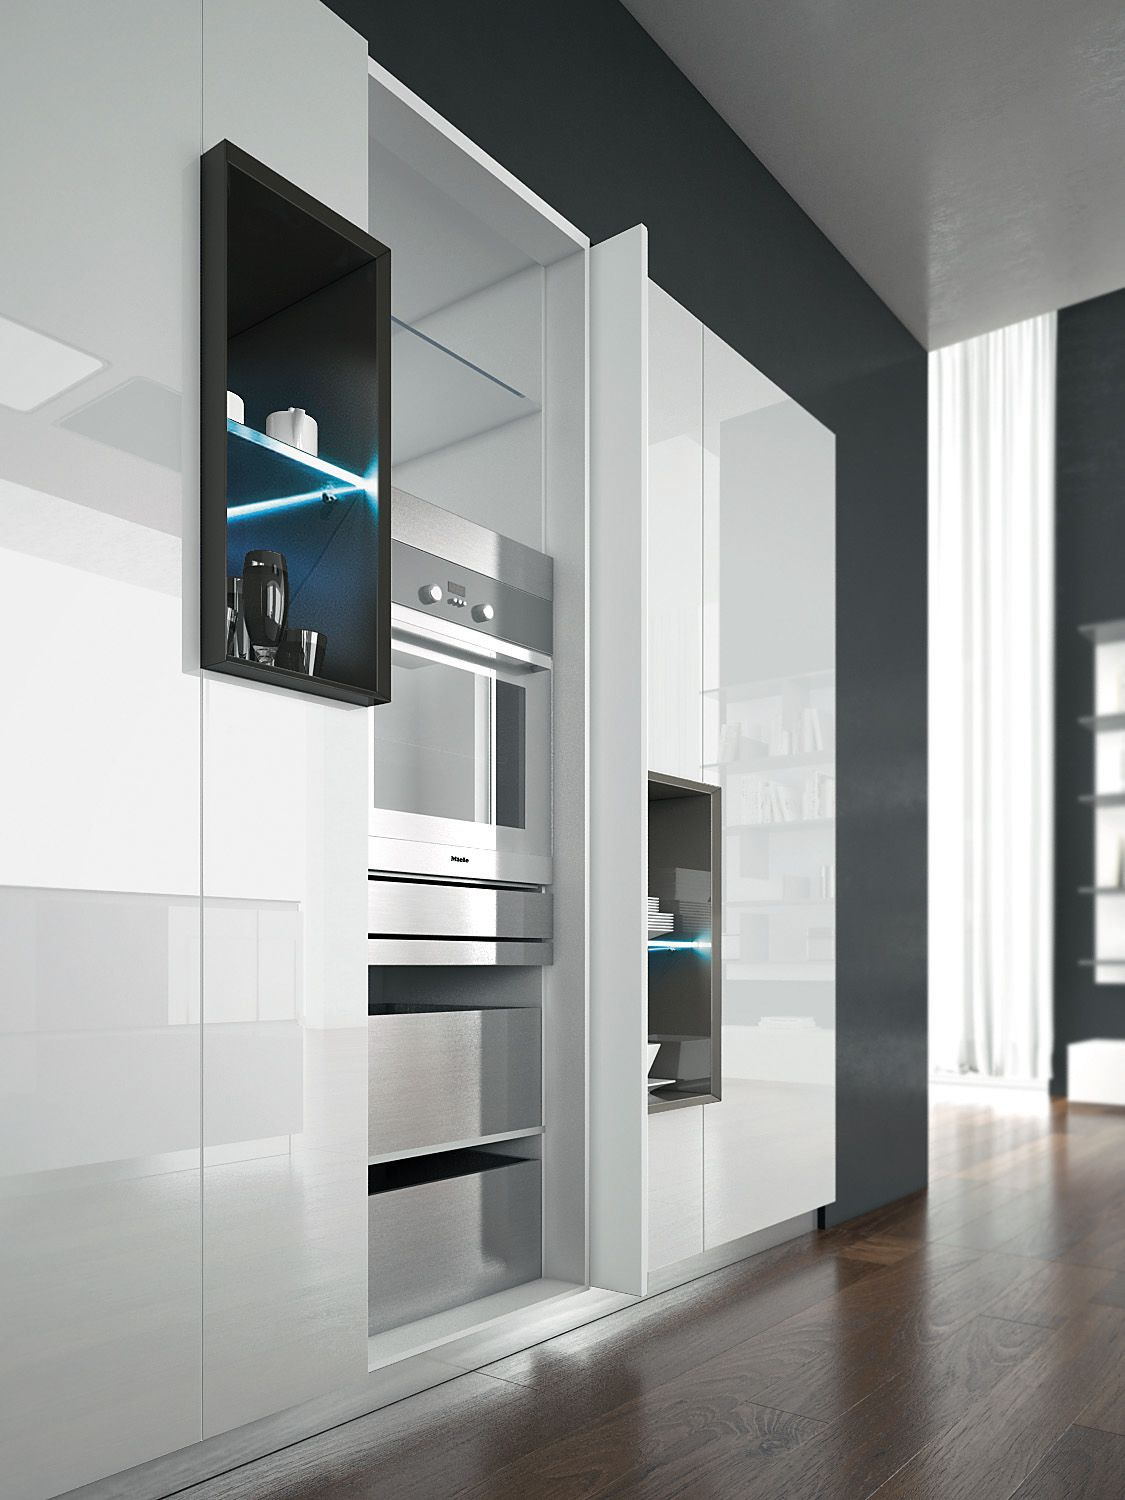 The Shining Glossy Retractable Doors Can Hold Shelves